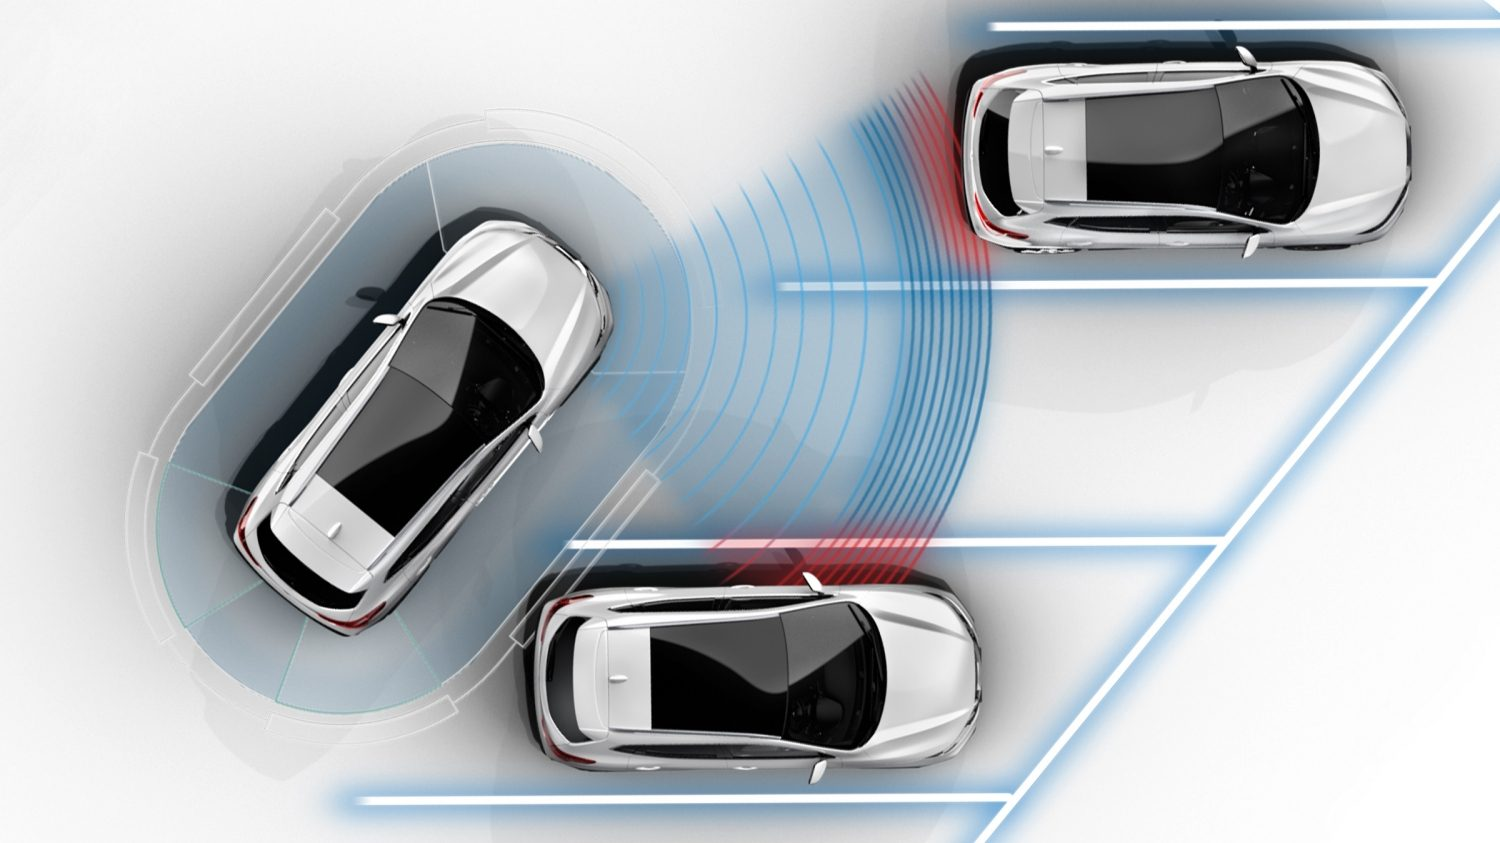 Nissan QASHQAI intelligent parkeringsassistent, illustration